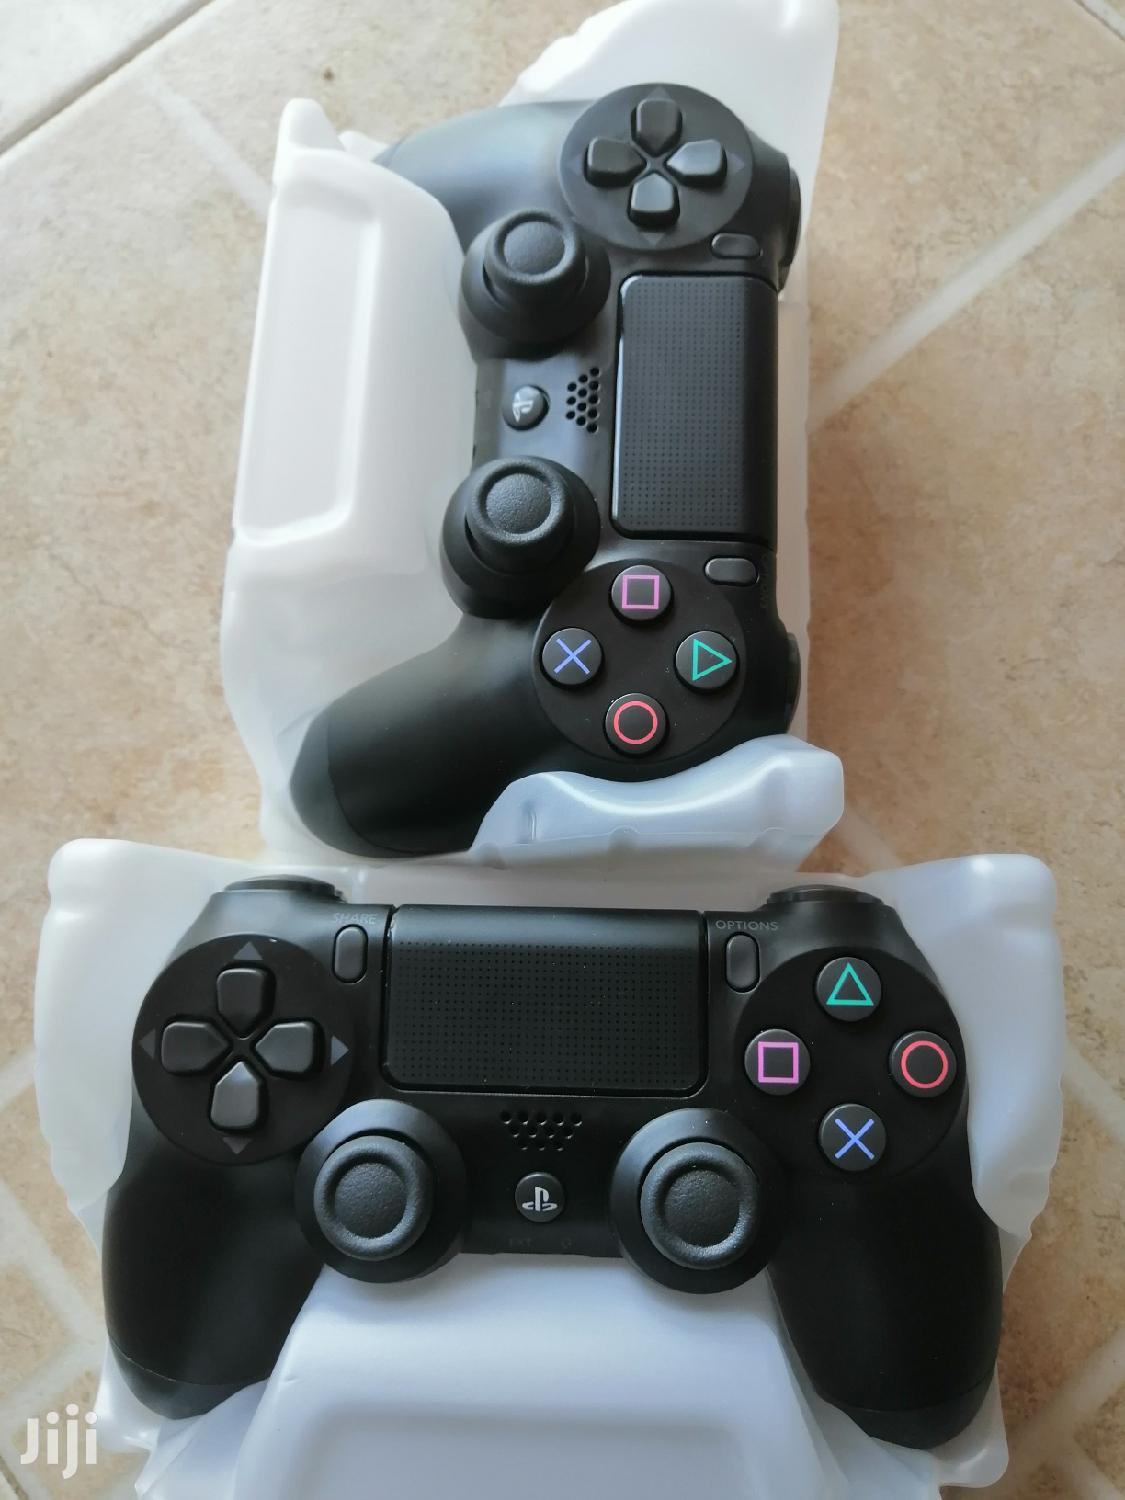 Archive: PS4 Controllers 4 Sale